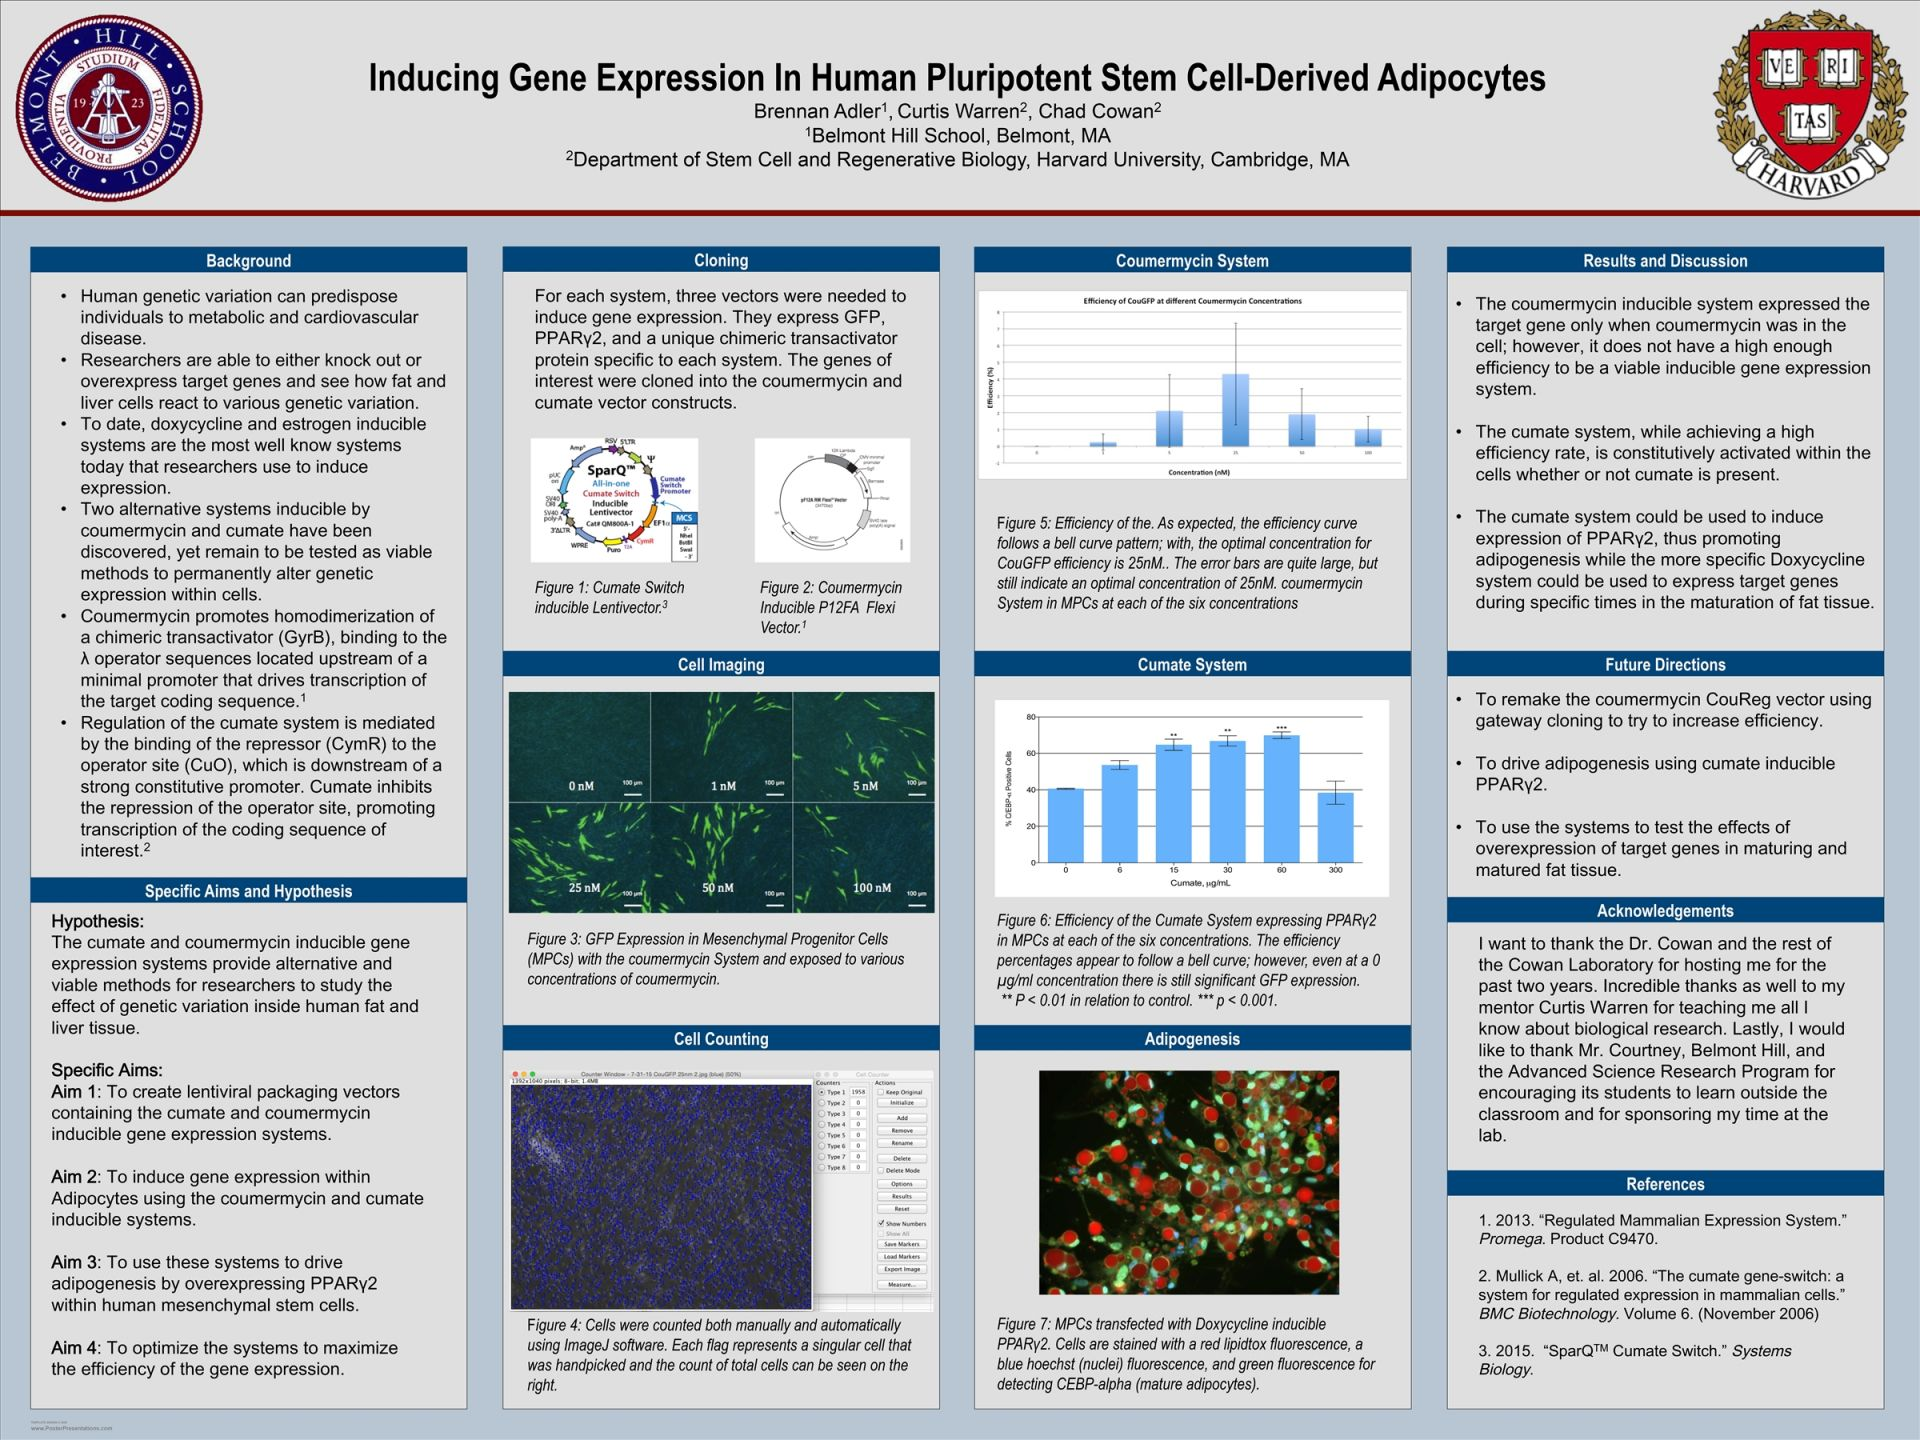 Brennan Adler-Inducing Gene Expression in Human Pluripotent Stem Cell-Derived Adipocytes